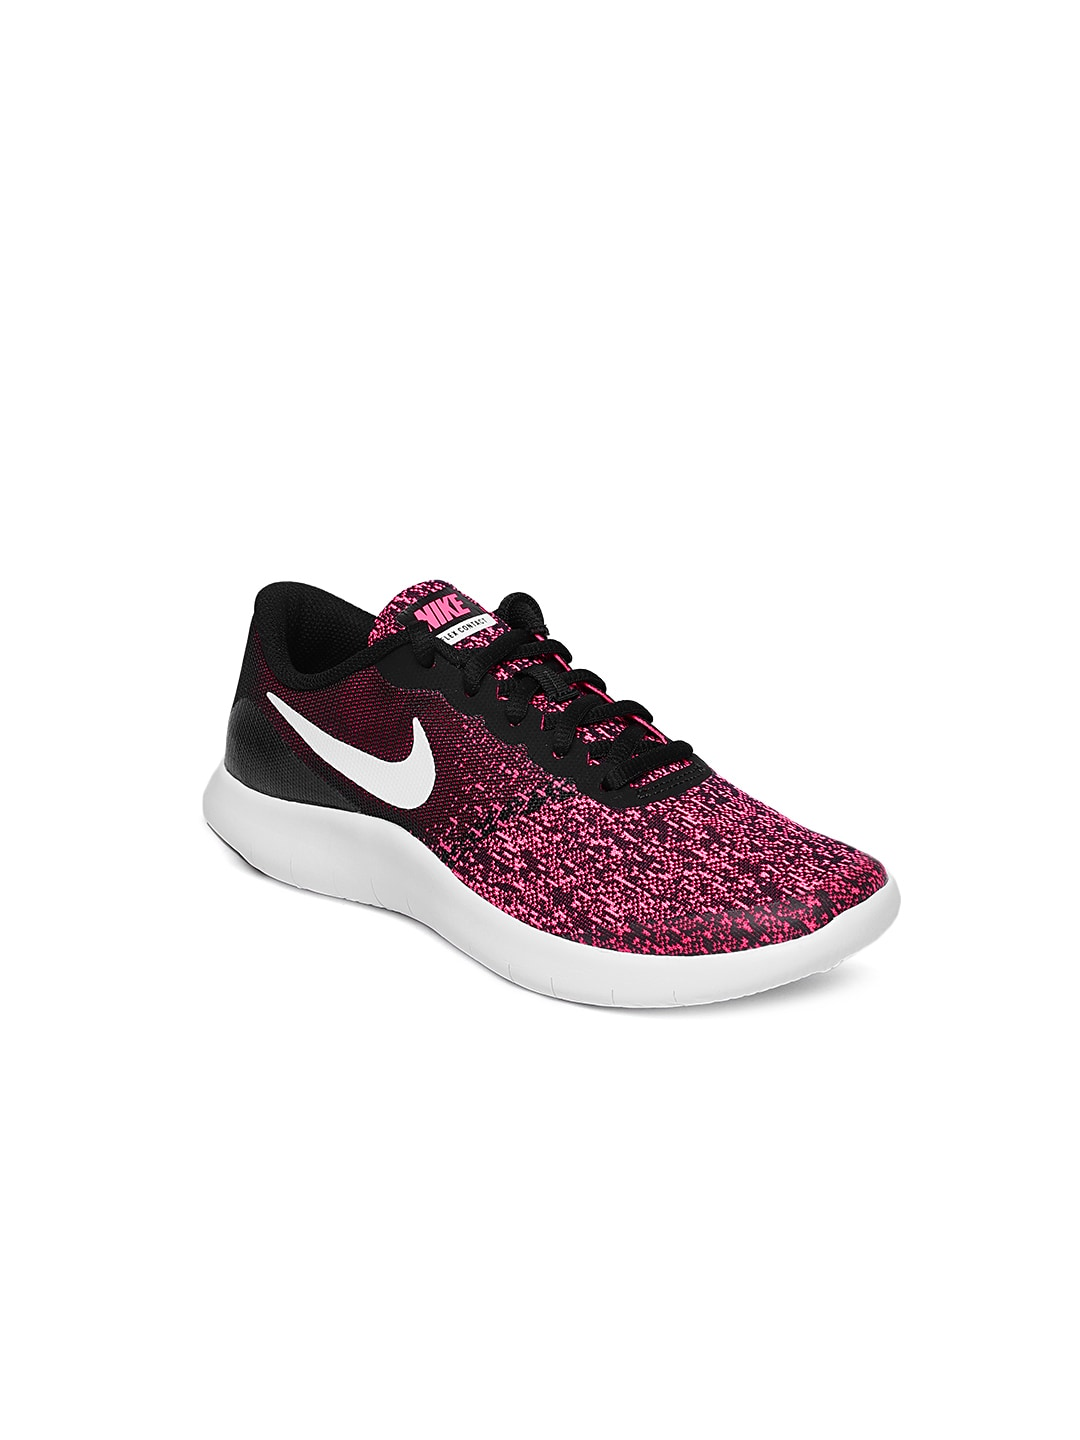 d99ec5d4e486 Nike Shoes For Girls - Buy Nike Shoes For Girls online in India